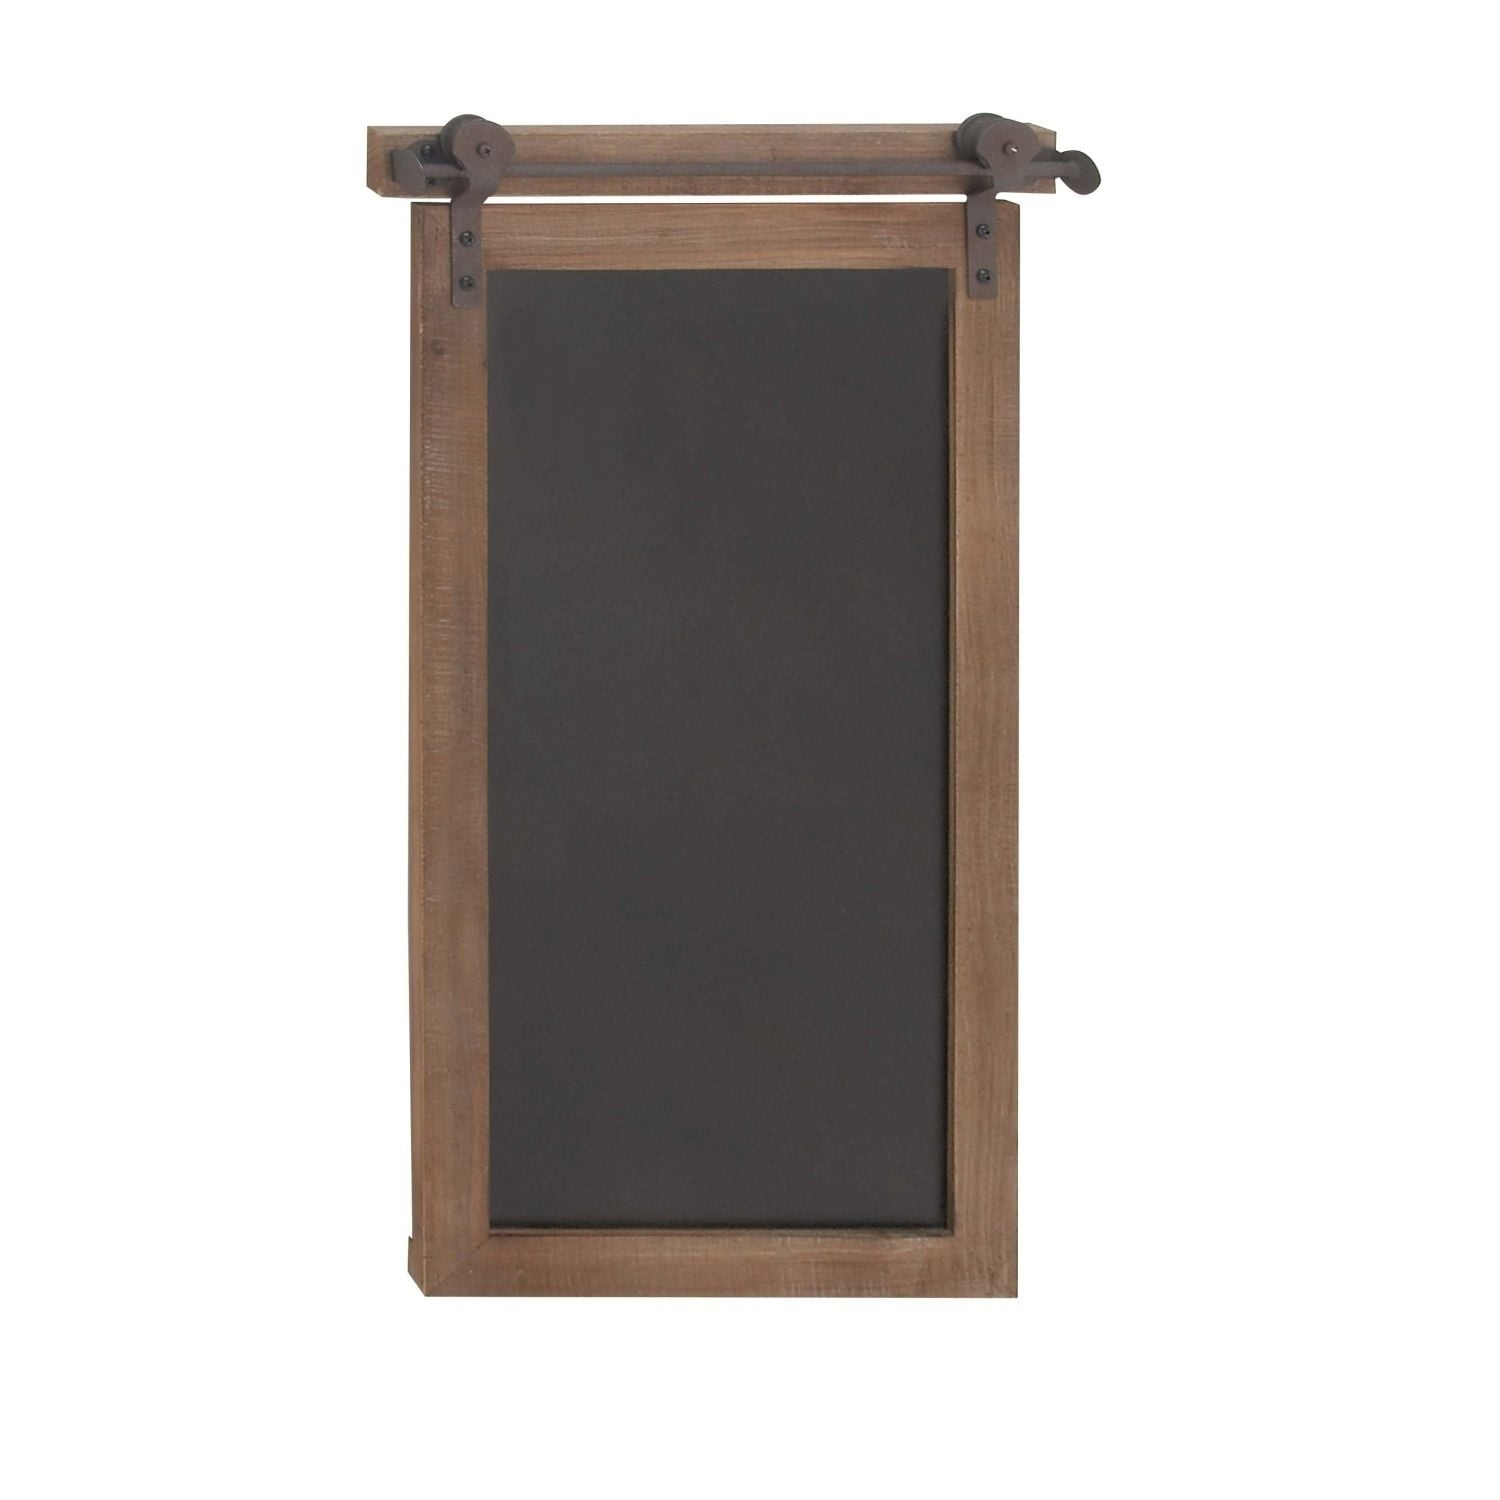 Studio 350 Wood Metal Chalkboard 16 inches wide, 28 inches high